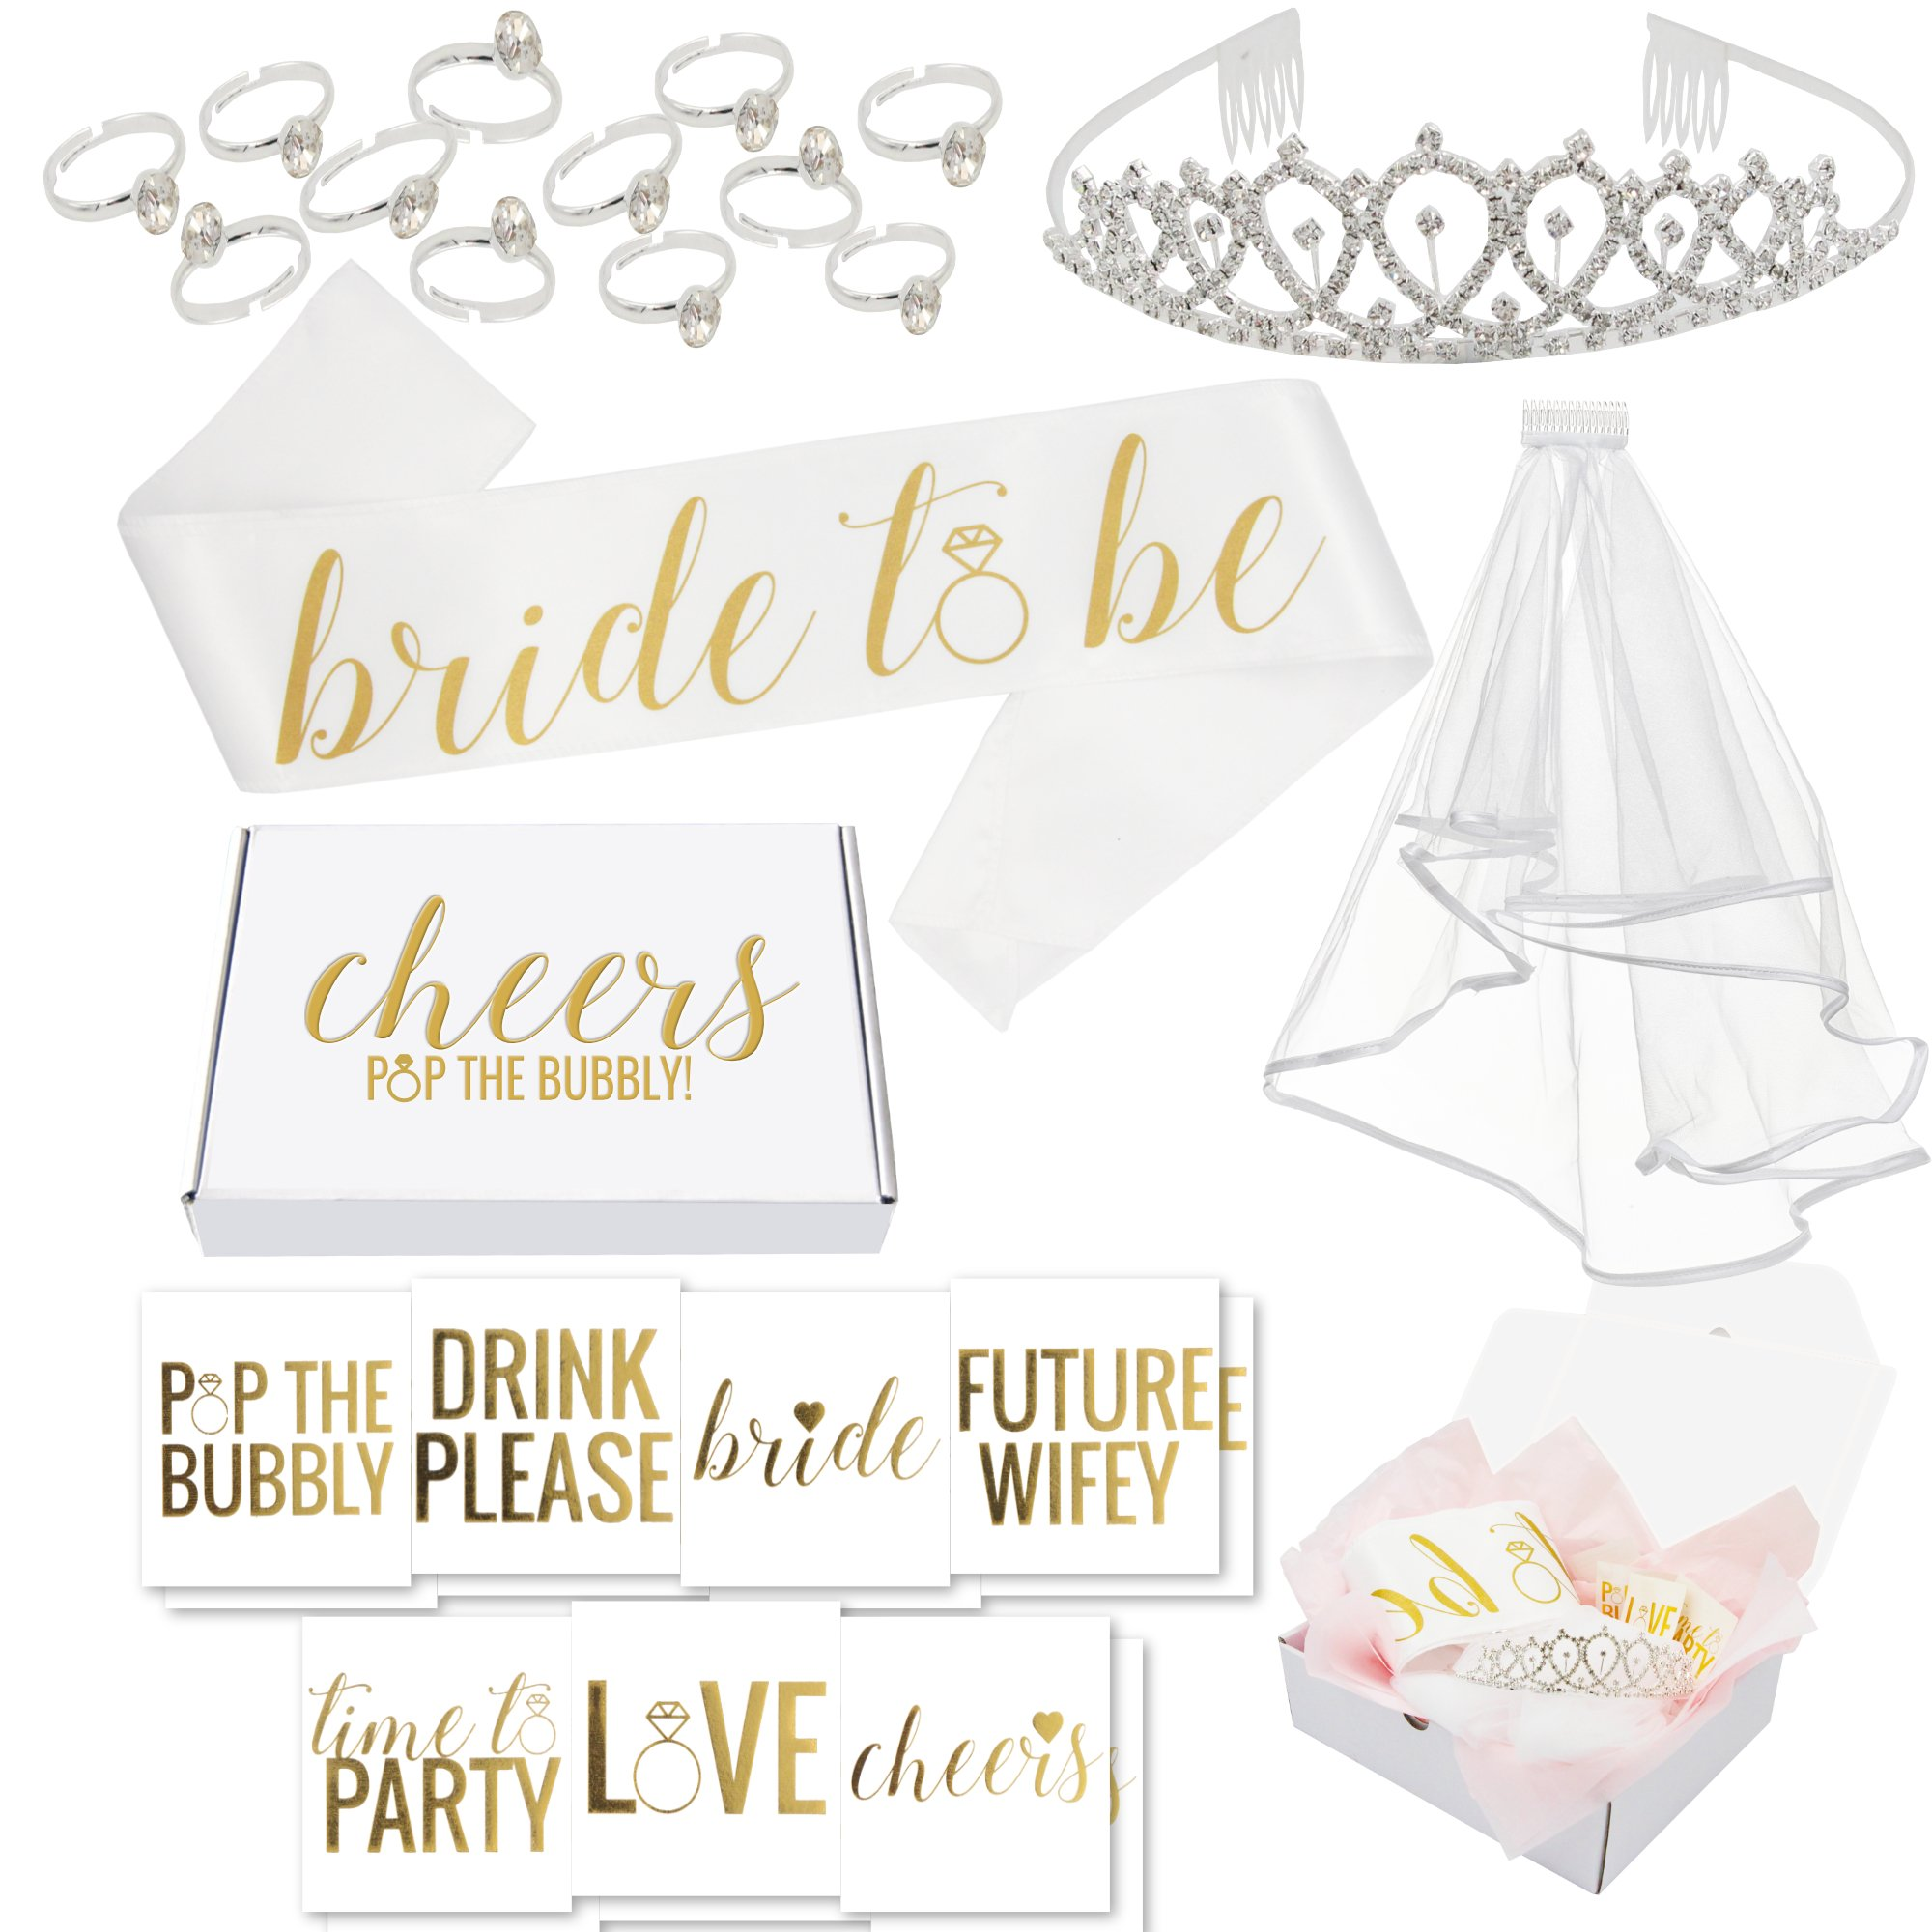 Bachelorette Party Decorations Kit//Bridal Shower Supplies with Cheers Gift Box: Tiara, Veil, Bride-To-Be Sash, Gold Bridal Tattoo Collection, Wearable Silver Engagement Rings! Cheers!